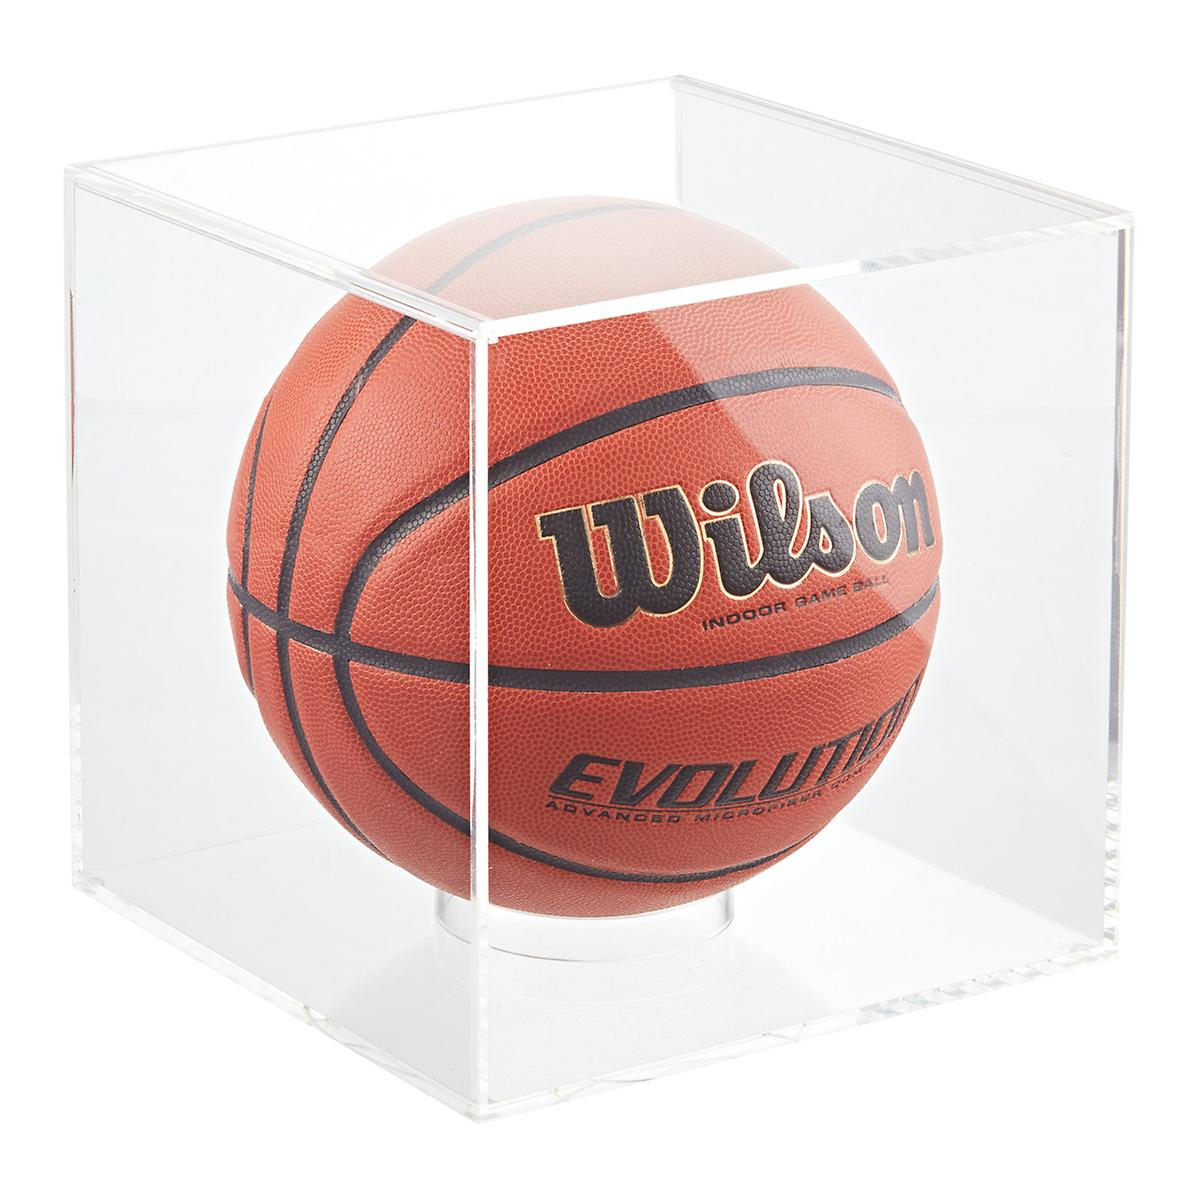 Acrylic Basketball Display Cube